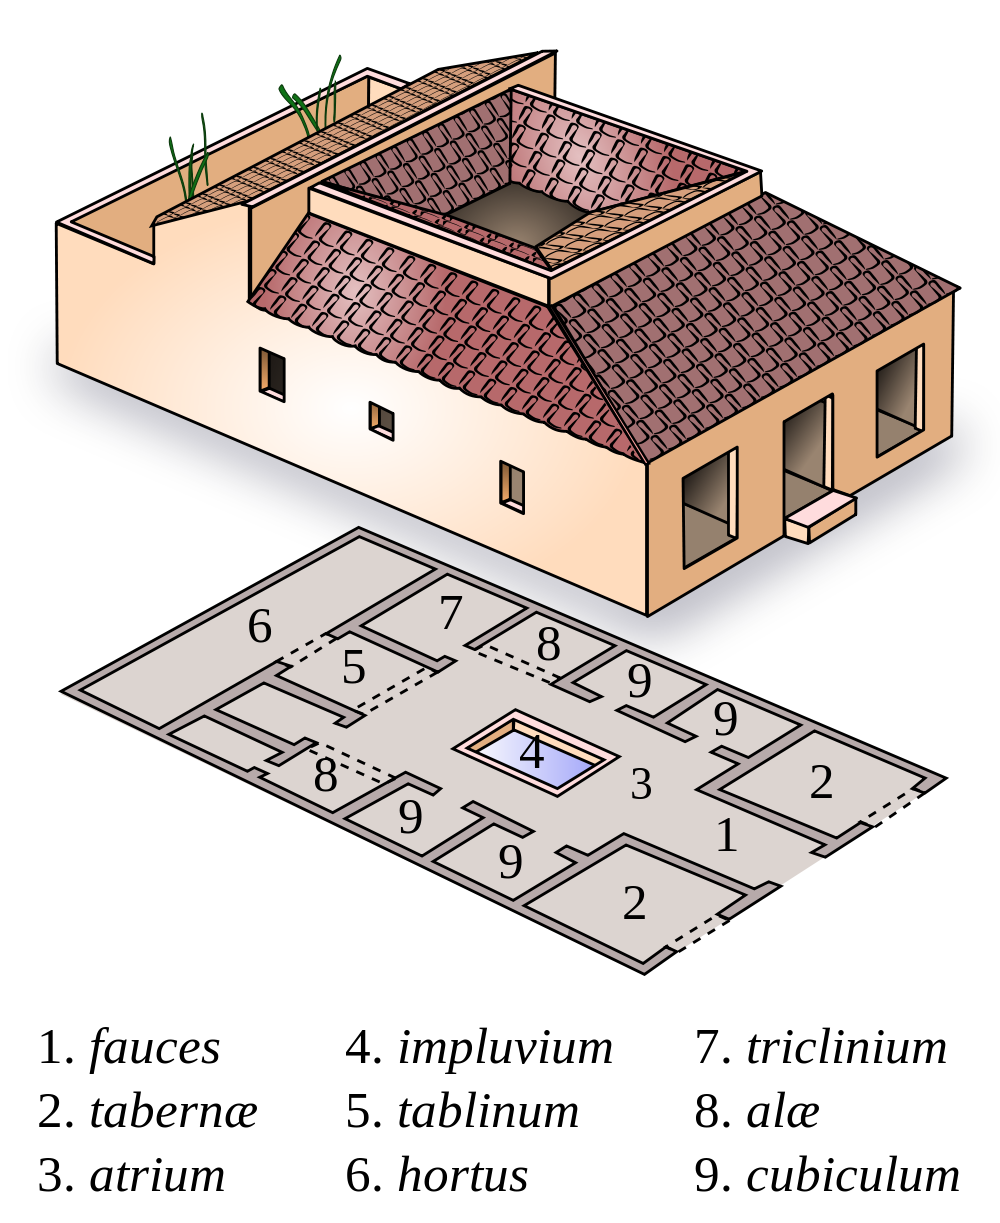 Architectural details of a Domus italica